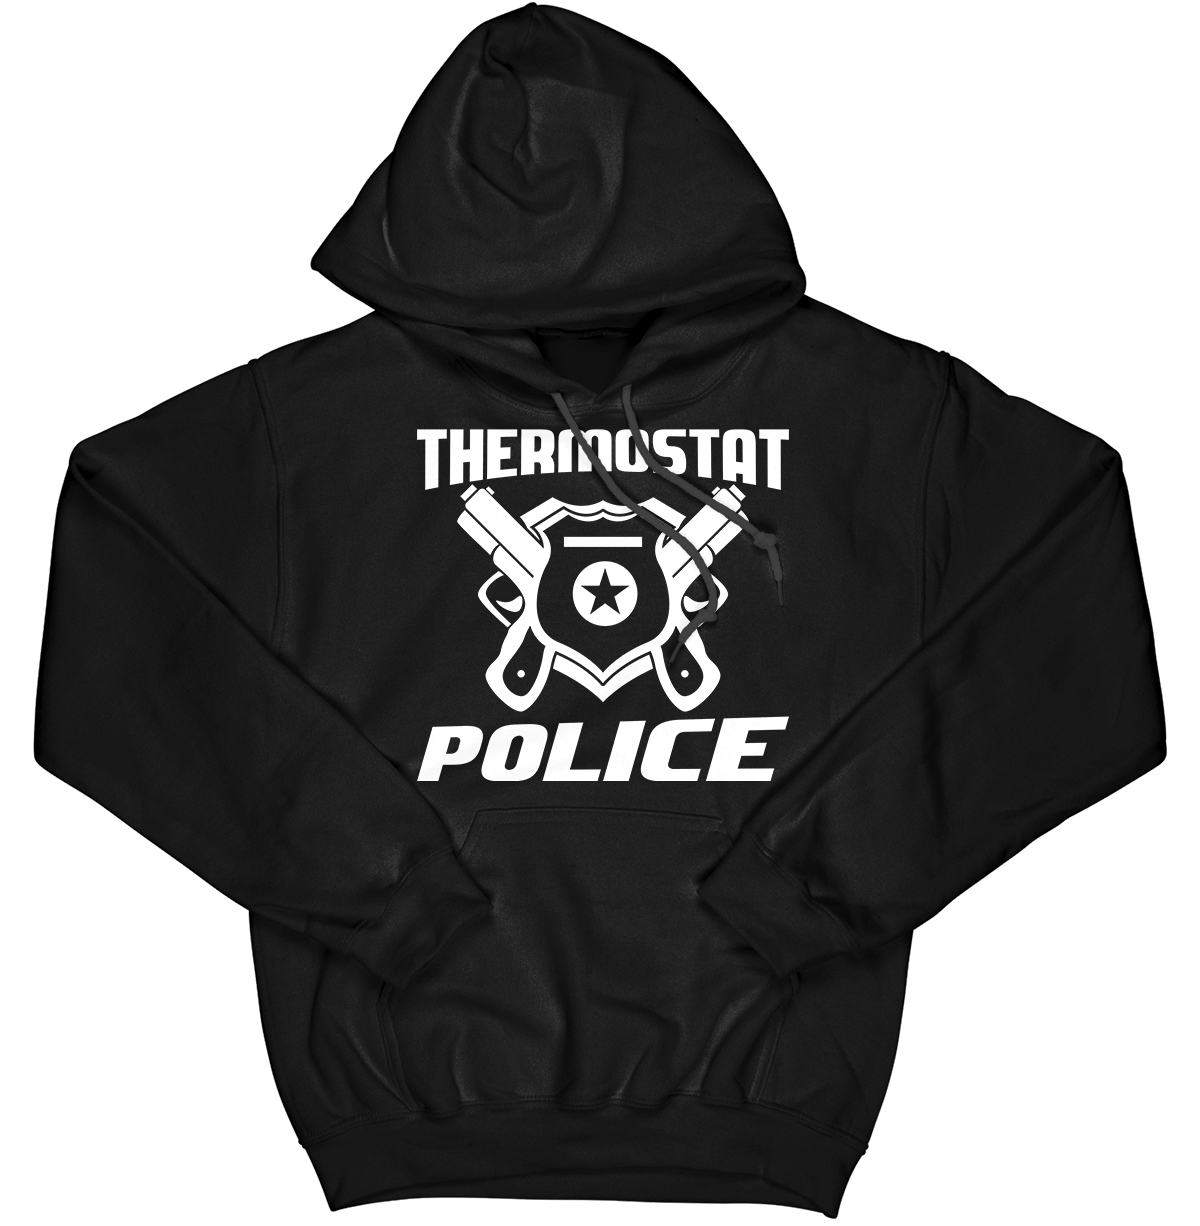 Thermostat Police Hoodie